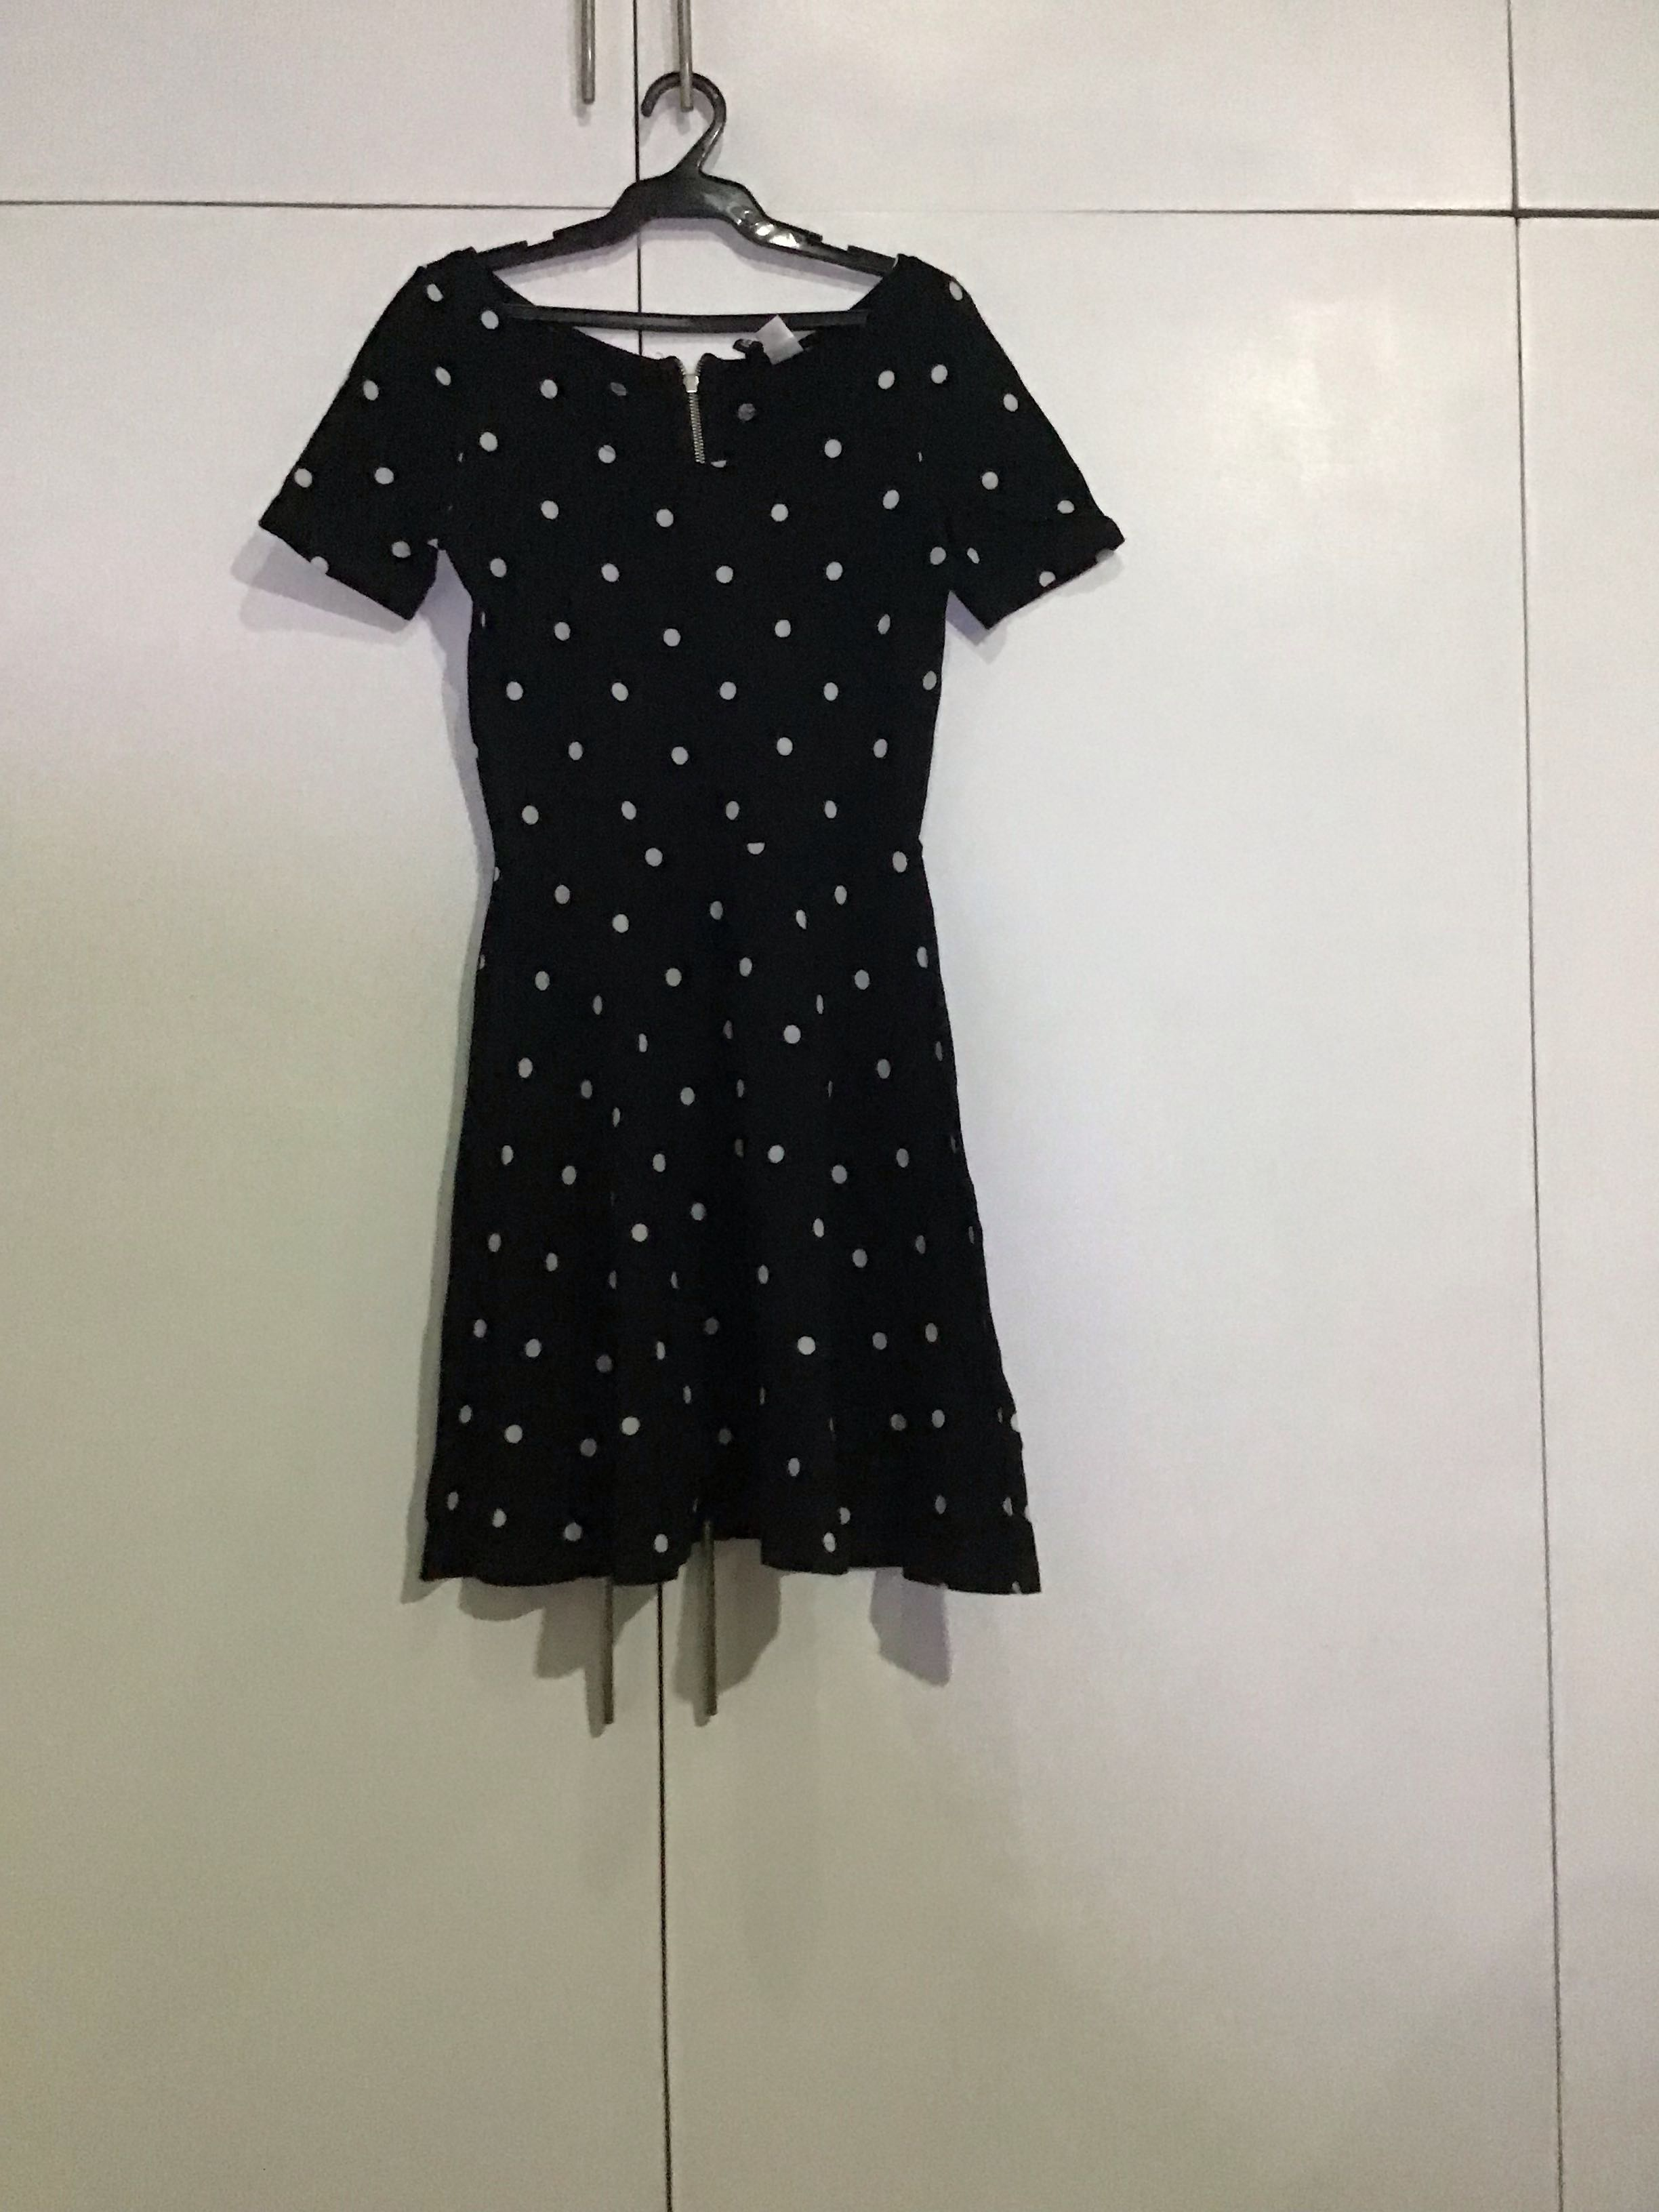 40f8def75b Black and white polka dot dress H&M, Women's Fashion, Clothes, Dresses &  Skirts on Carousell